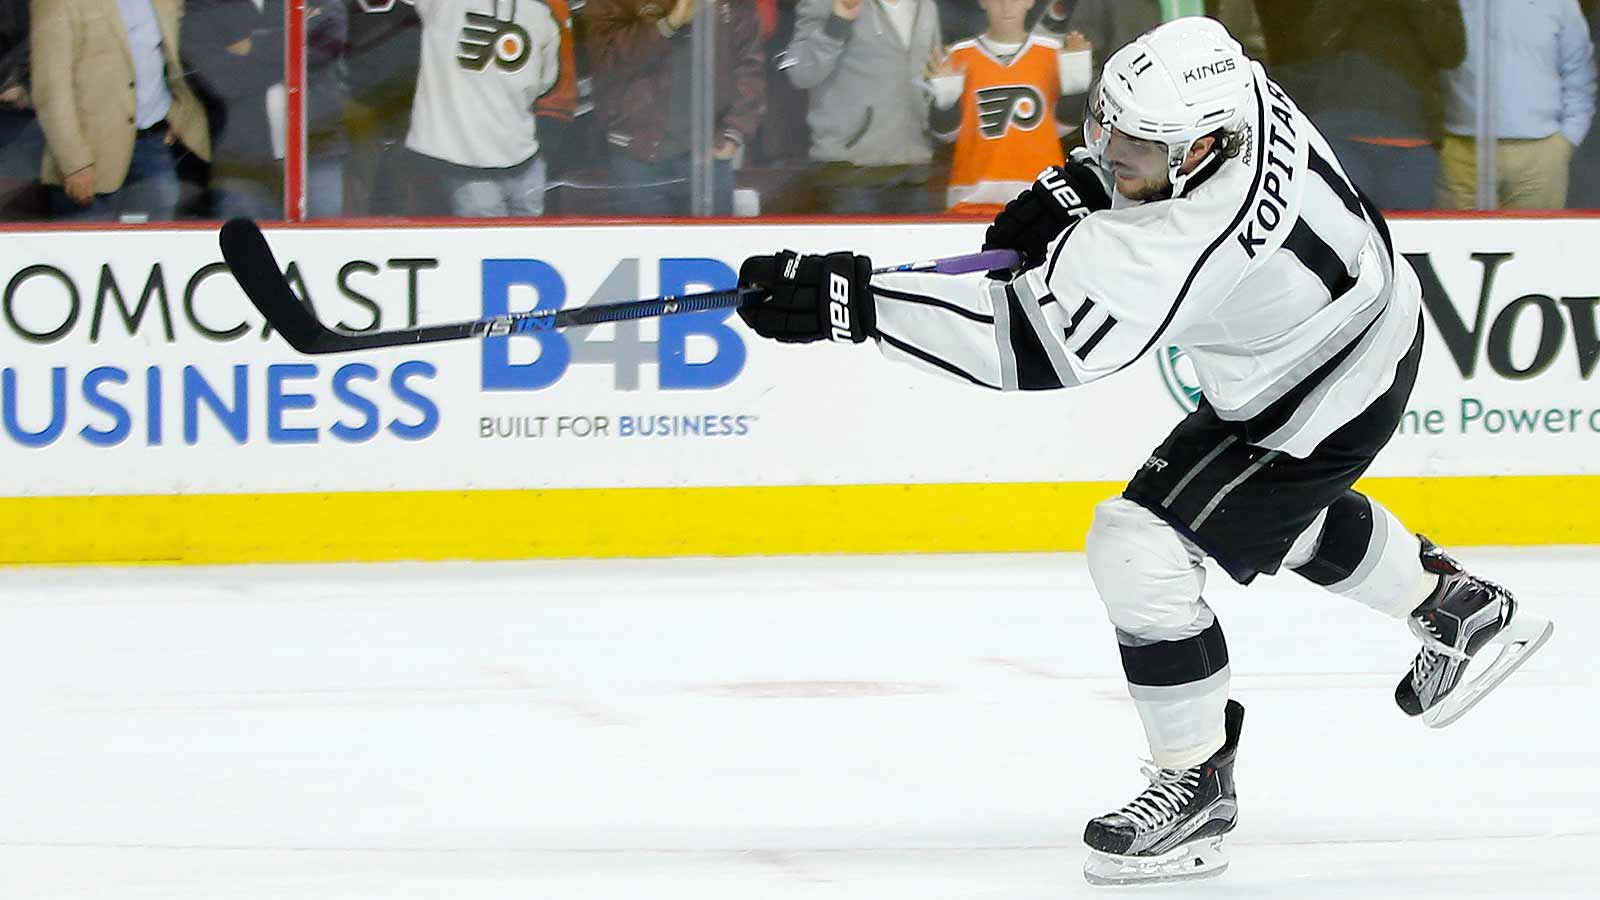 Los Angeles, NHL's worst shootout team last season, wins SO in Philly